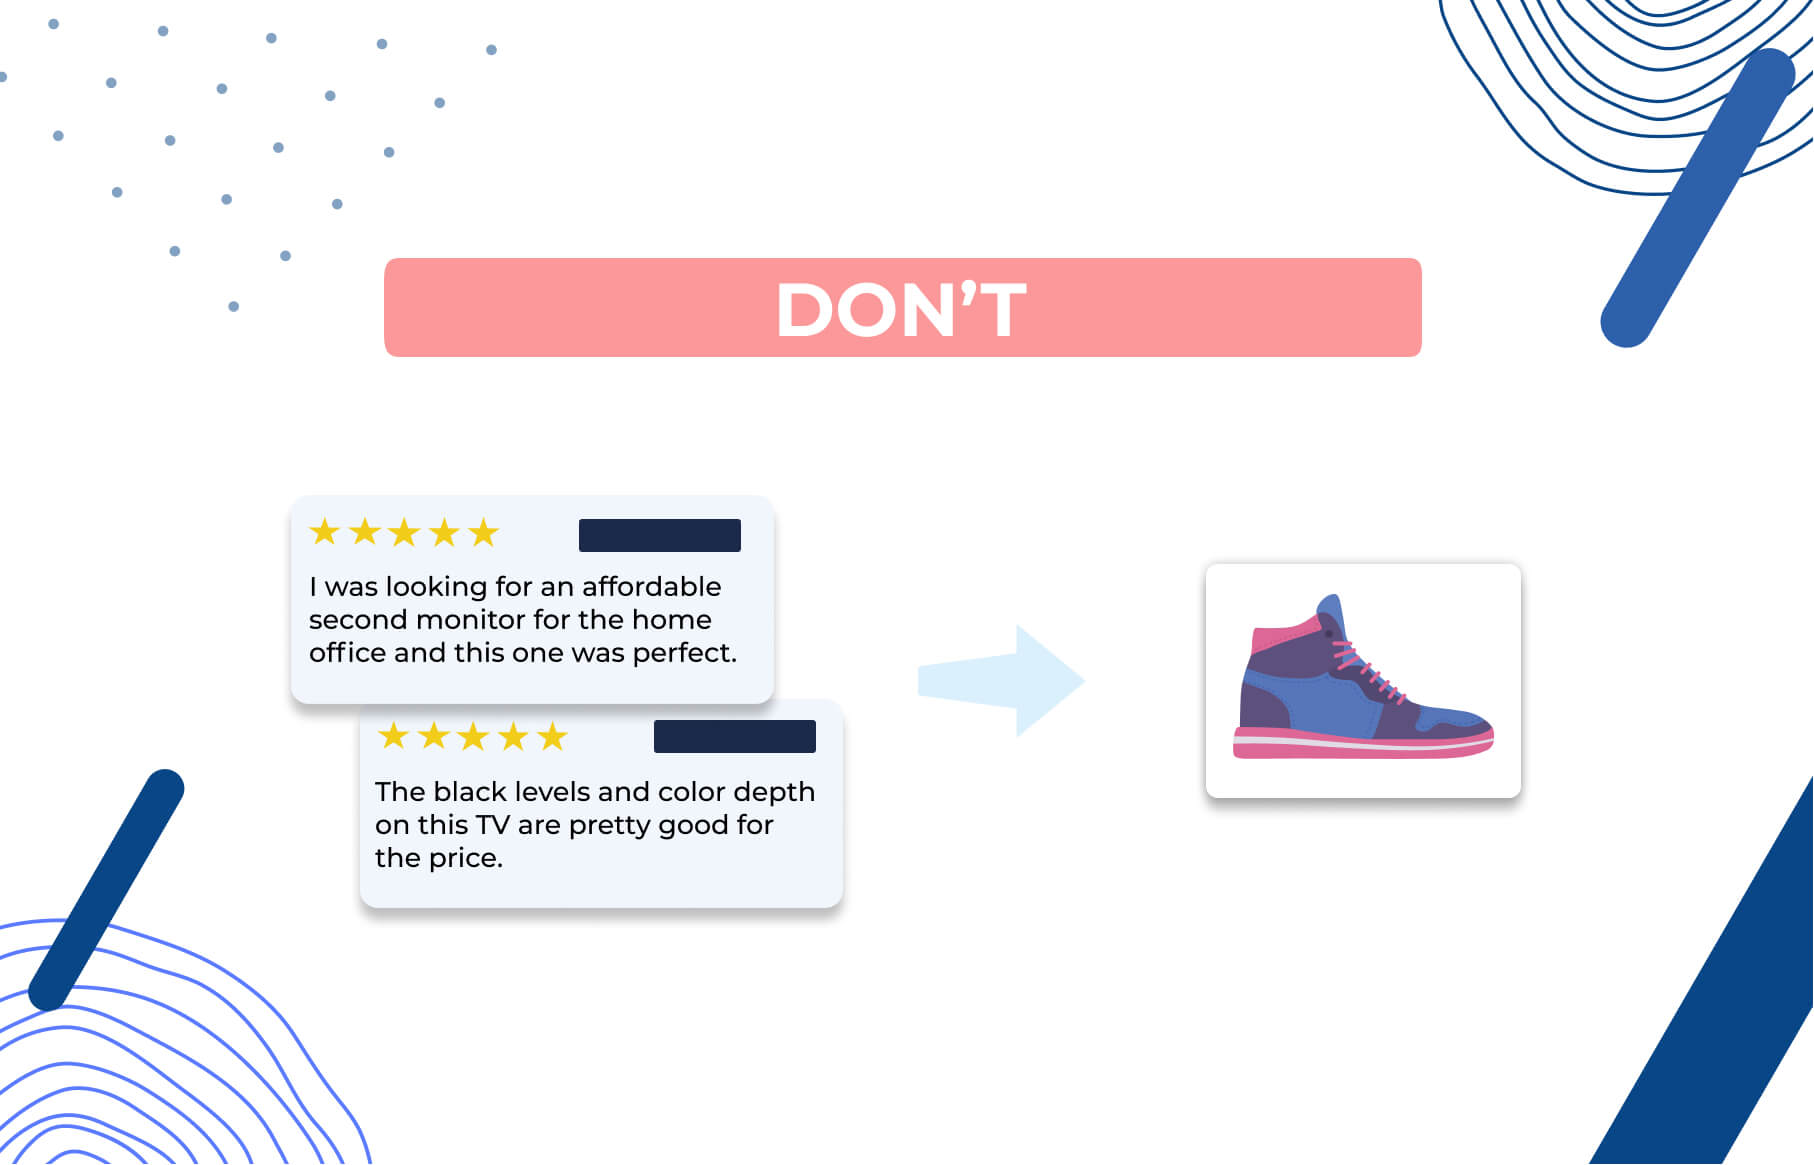 Bad example: import reviews for a TV to your sneaker shop